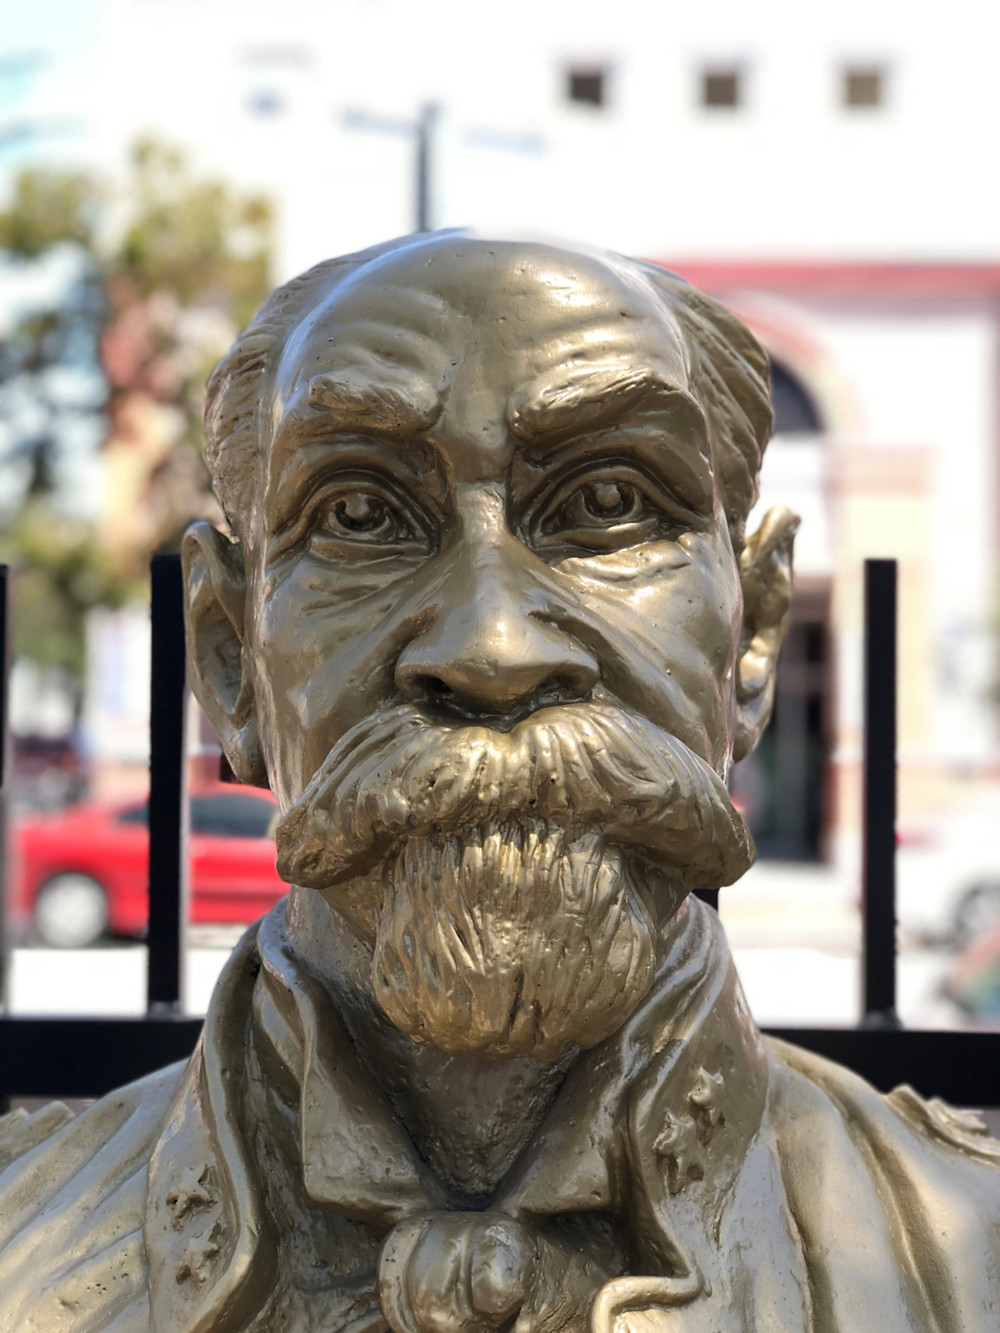 Bust of Generalissimo Maximo Gomez in Little Havana